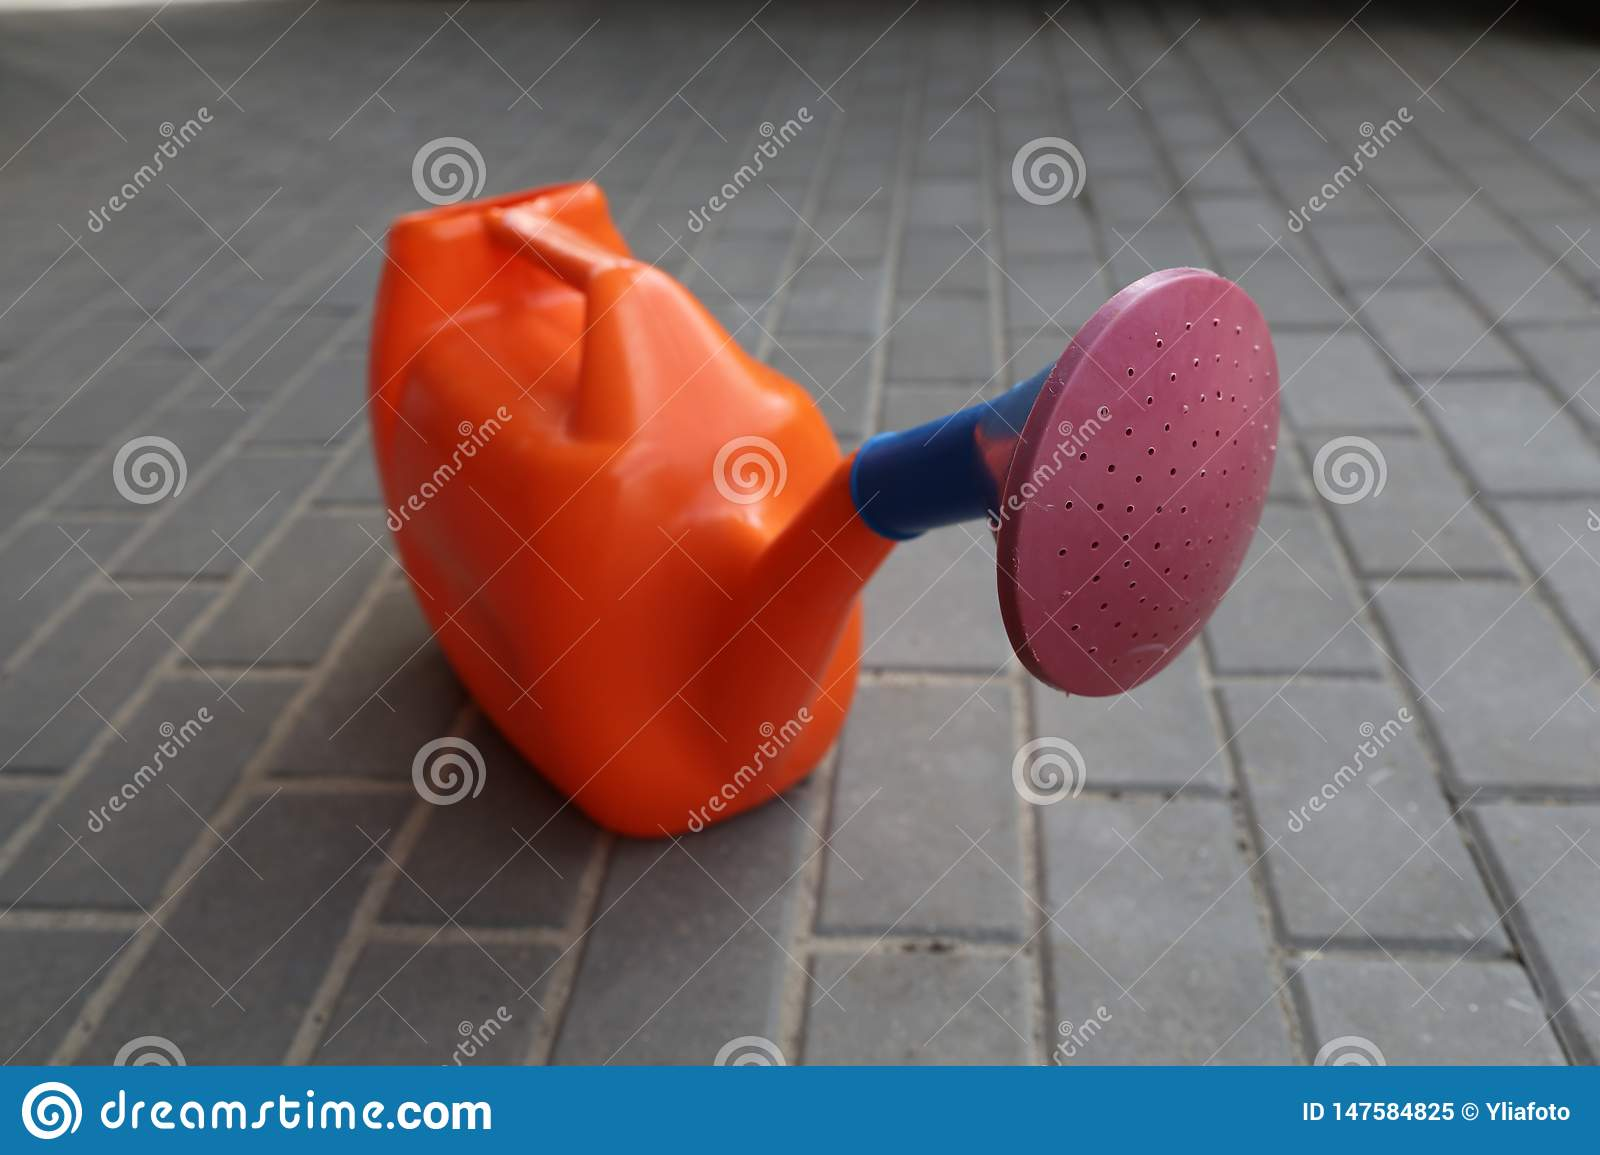 Garden watering can of orange color with a claret tip costs on a tile